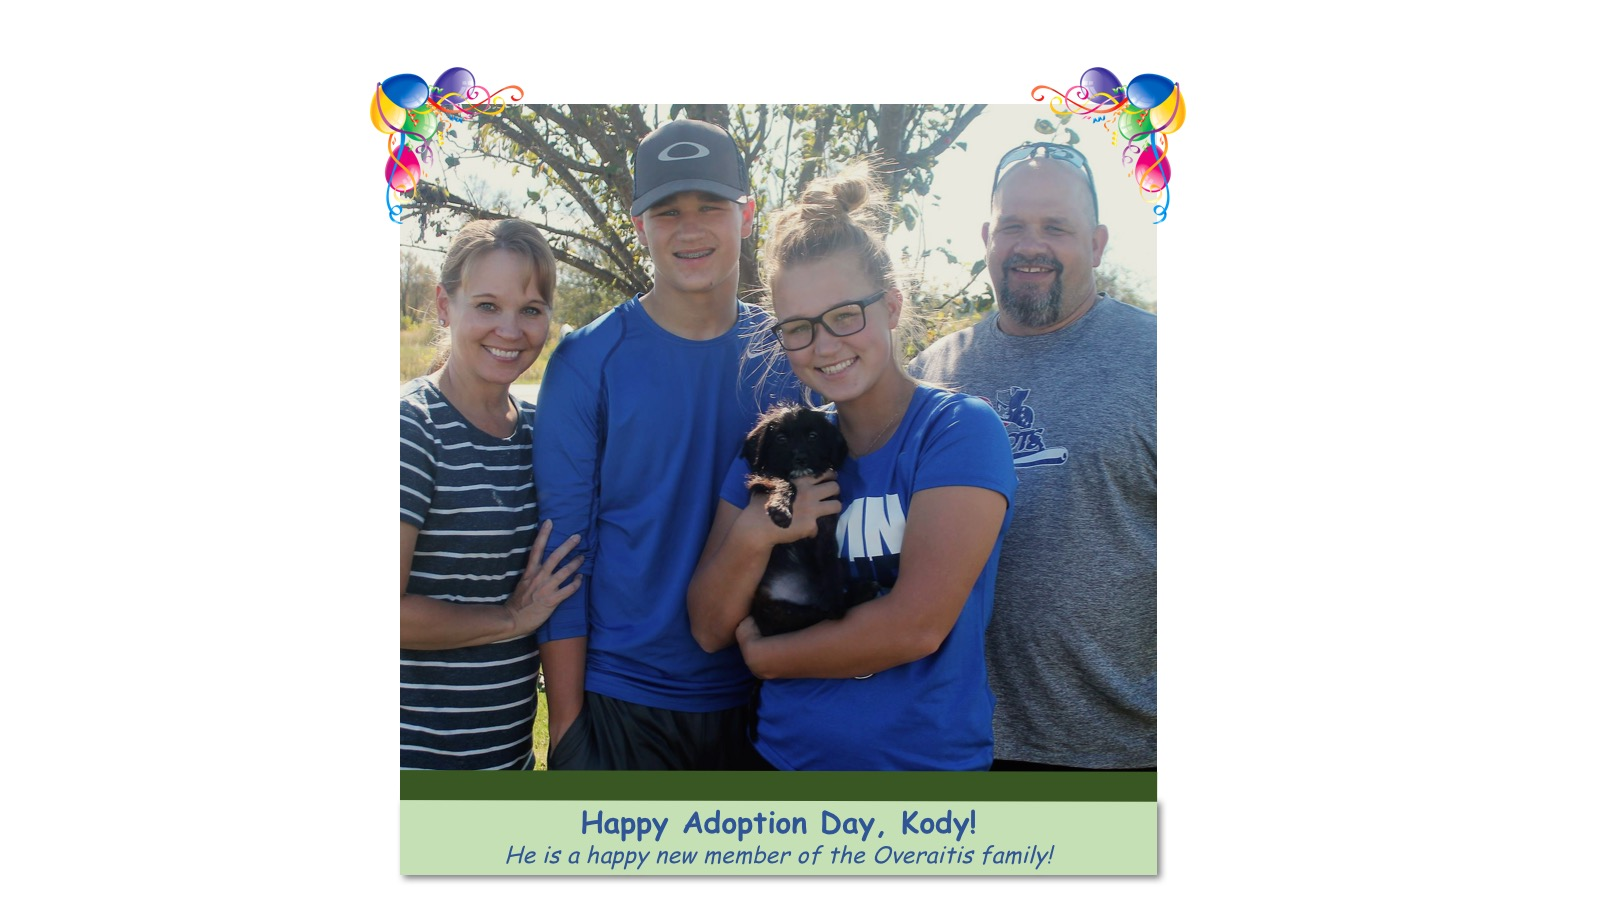 Kody_Adoption_photo63057.jpg